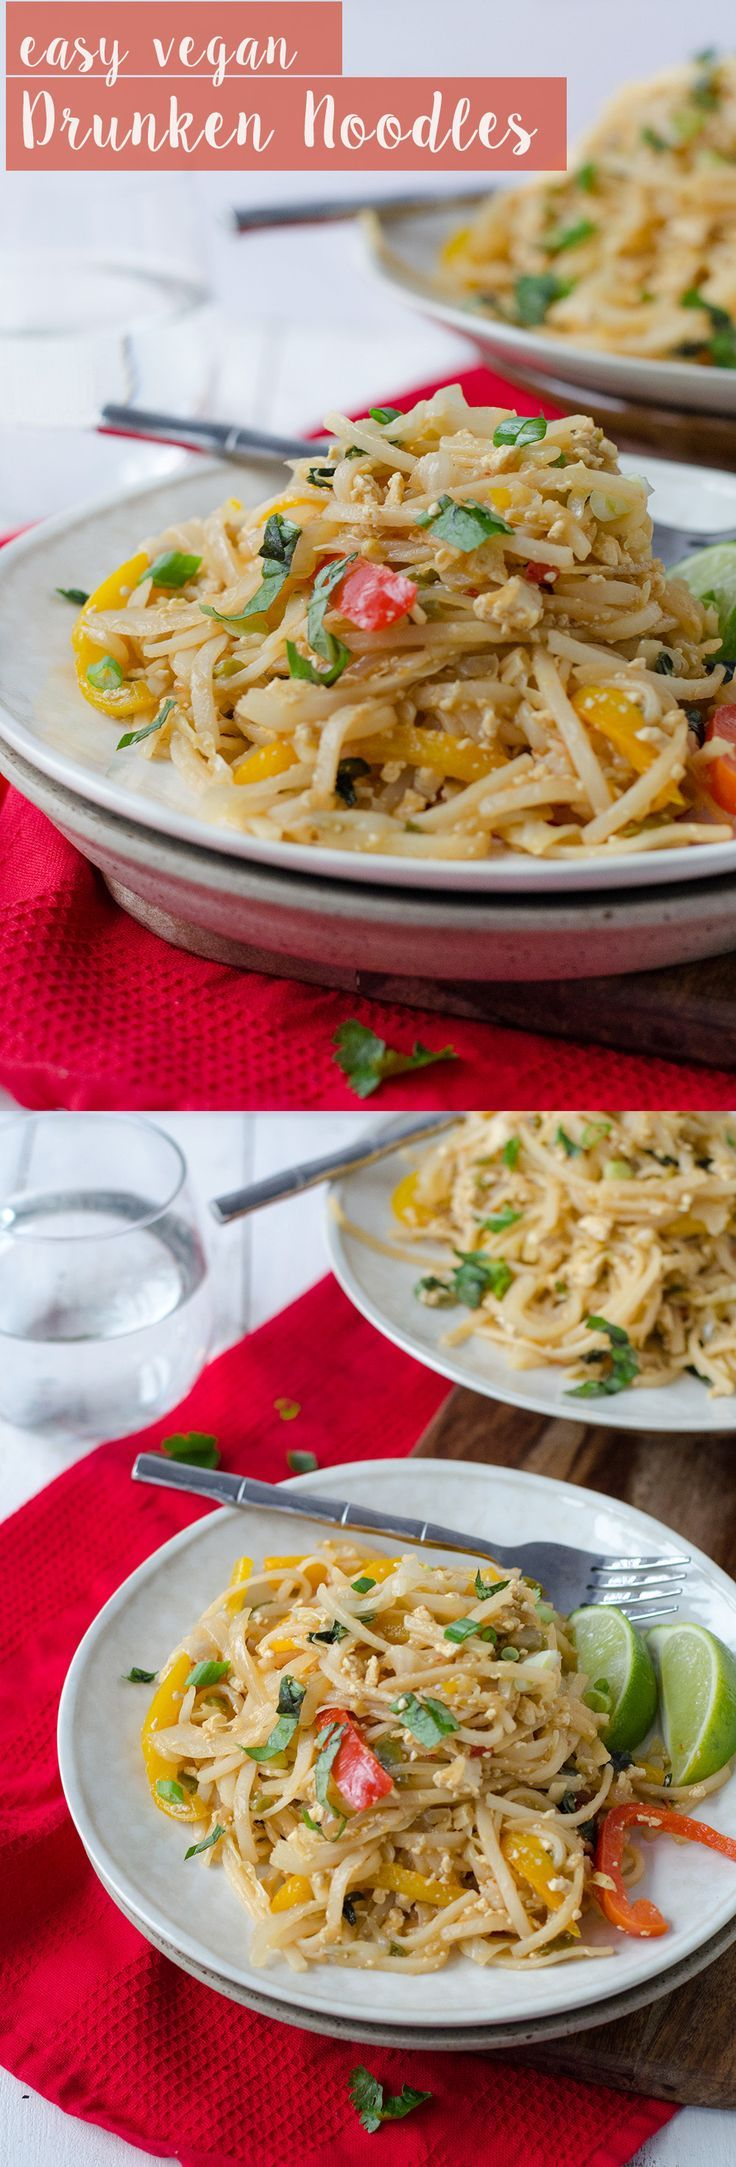 Easy Vegan Drunken Noodles! Spicy sauce with rice noodles and vegetables. Easier and healthier than Thai takeout! #vegan #vegetarian #thai #dinner #healthy #spicy #weeknightdinner | www.delishknowledge.com